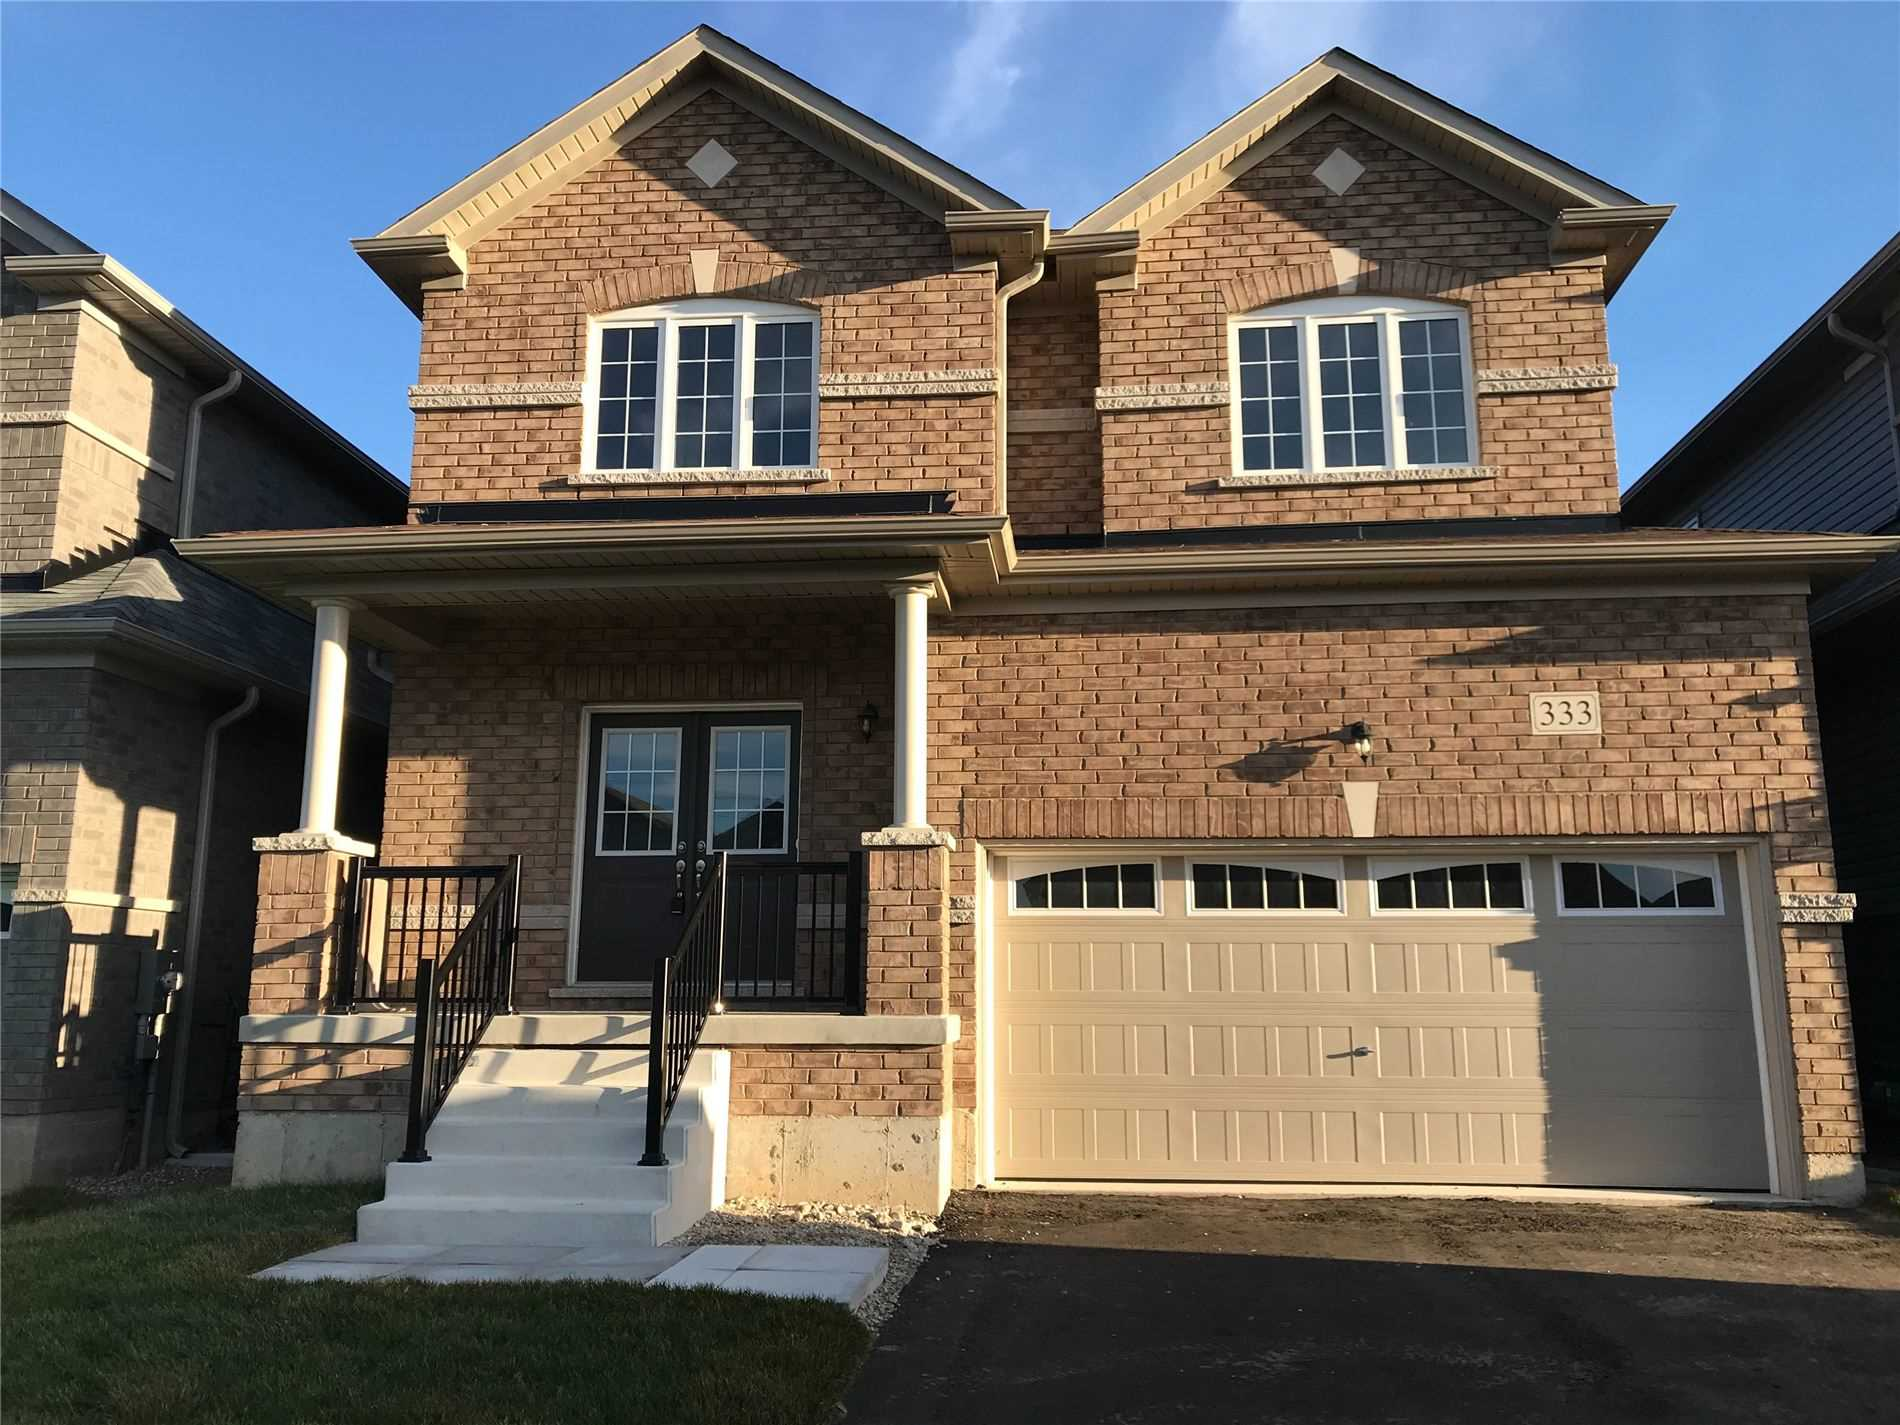 pictures of house for sale MLS: X4982105 located at 333 Van Dusen Ave, Southgate N0C1B0